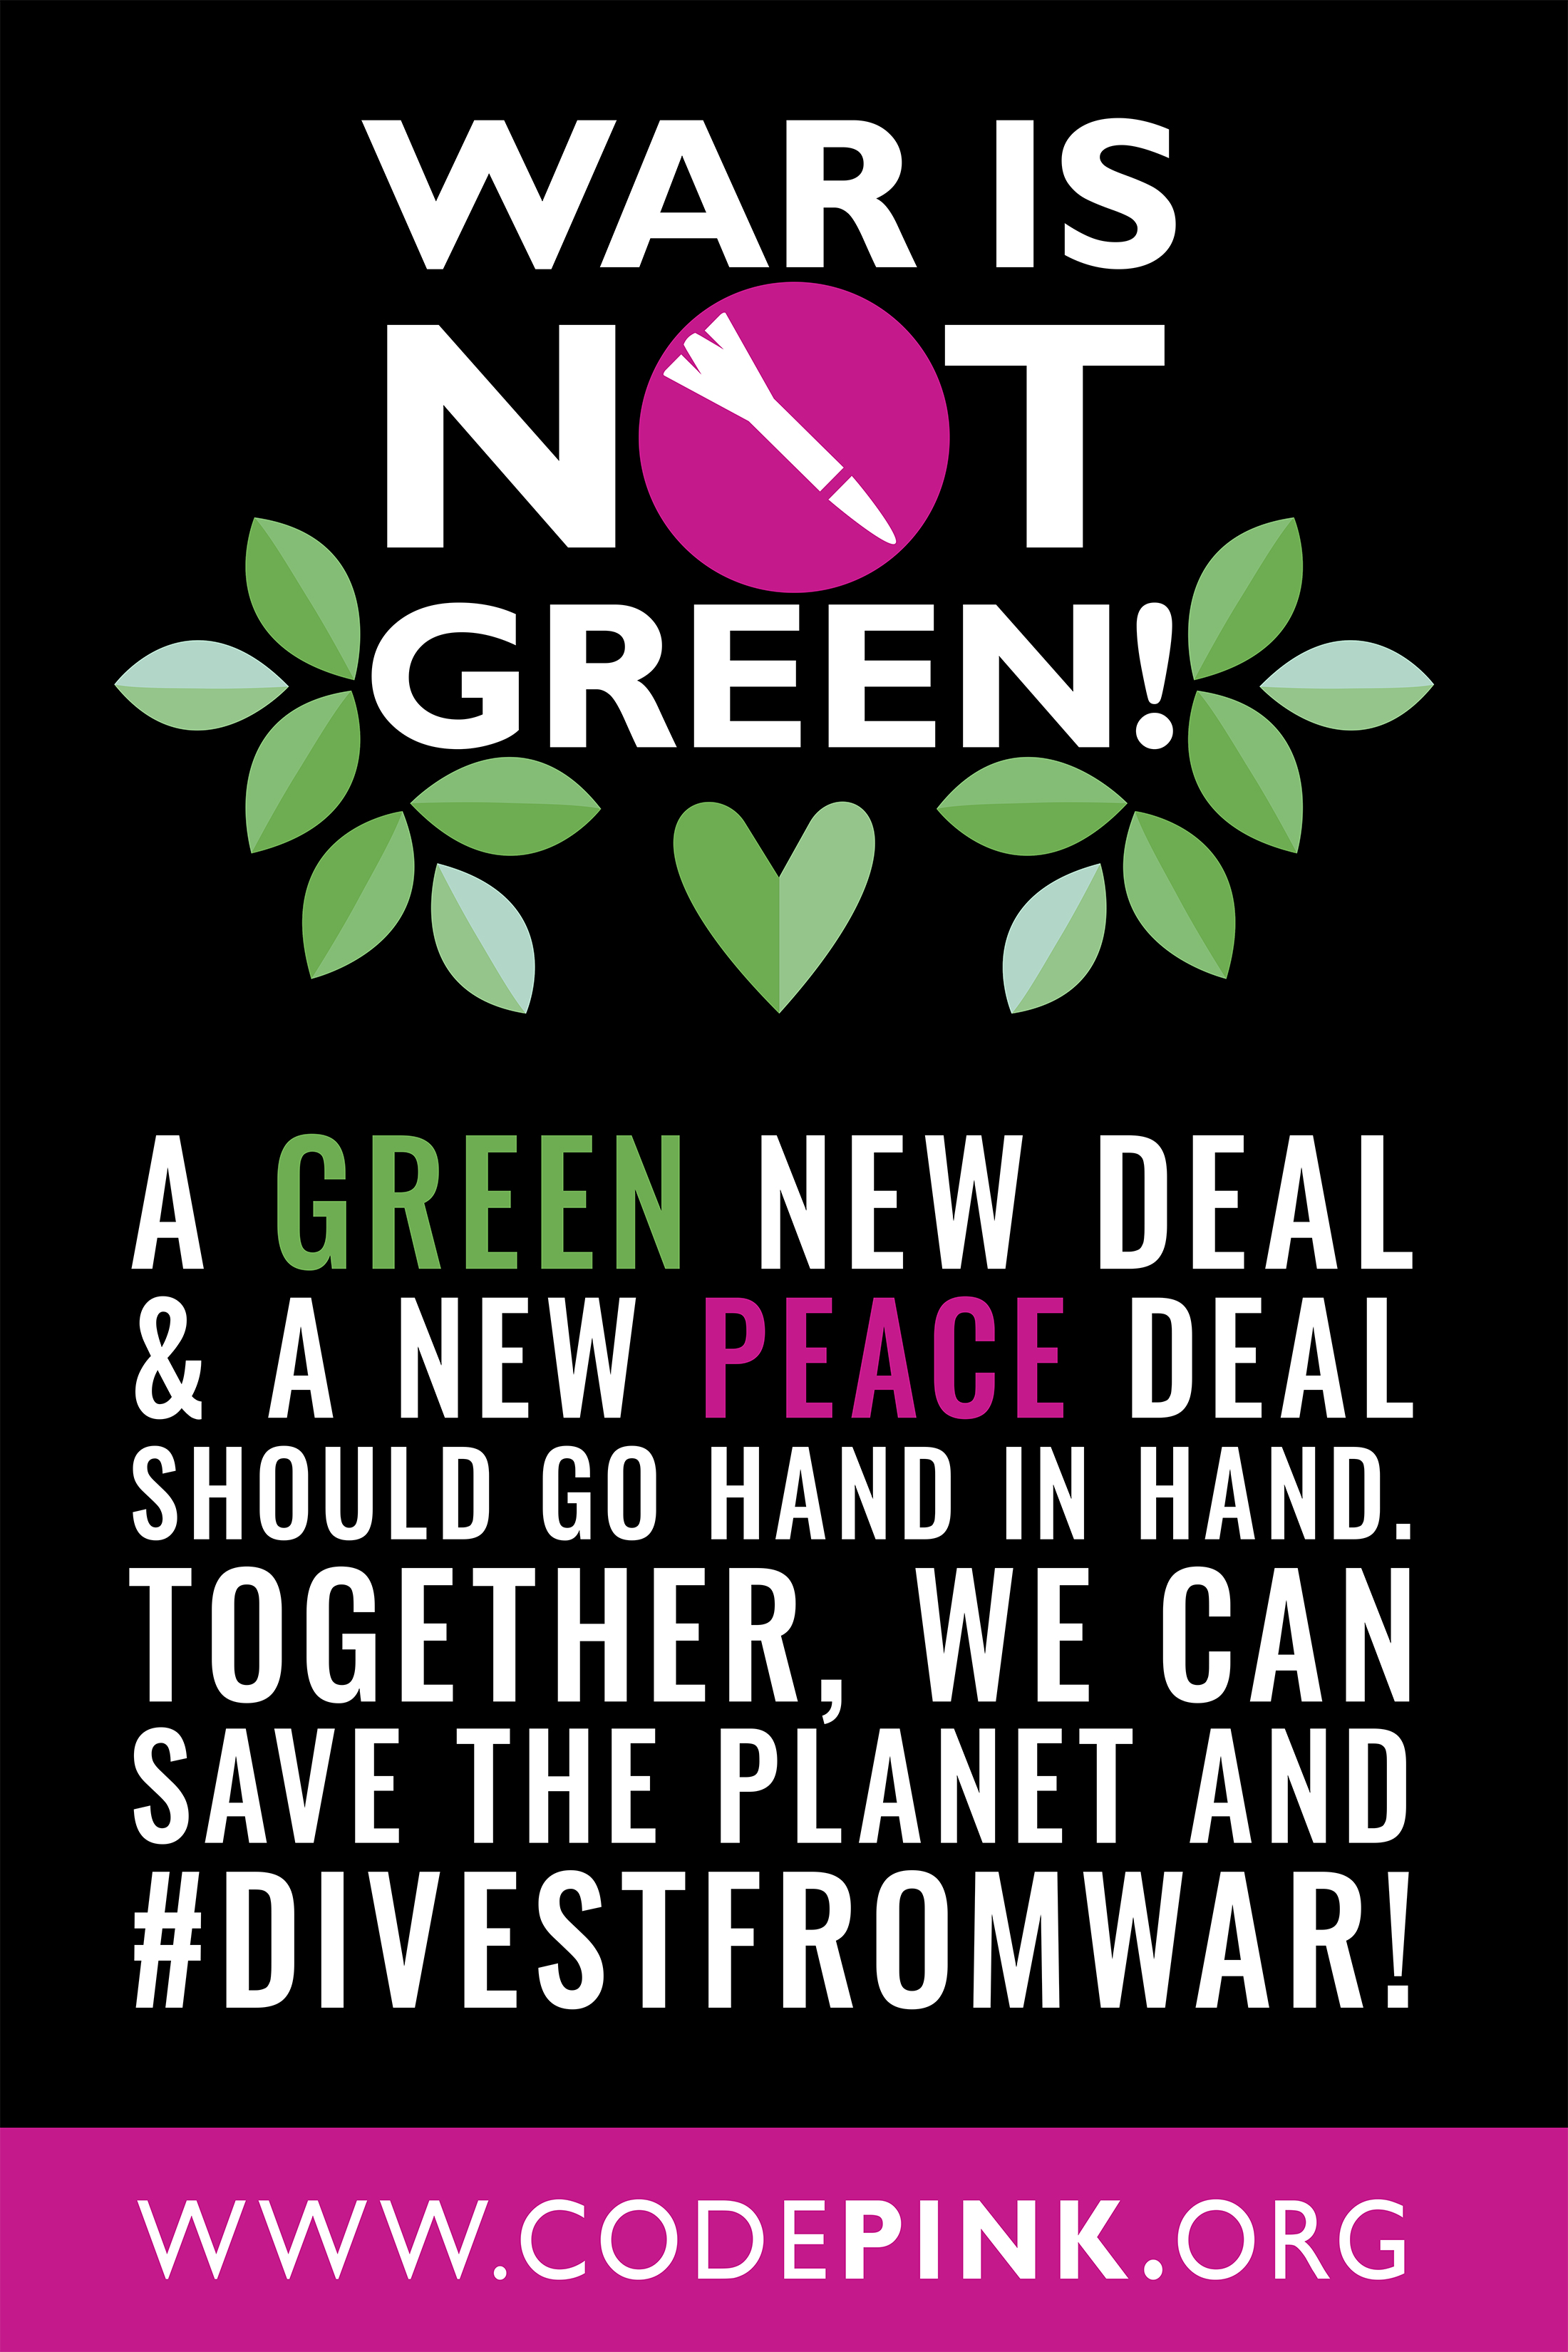 War_is_not_Green_Deal_March2019_LARGE_Poster.jpg